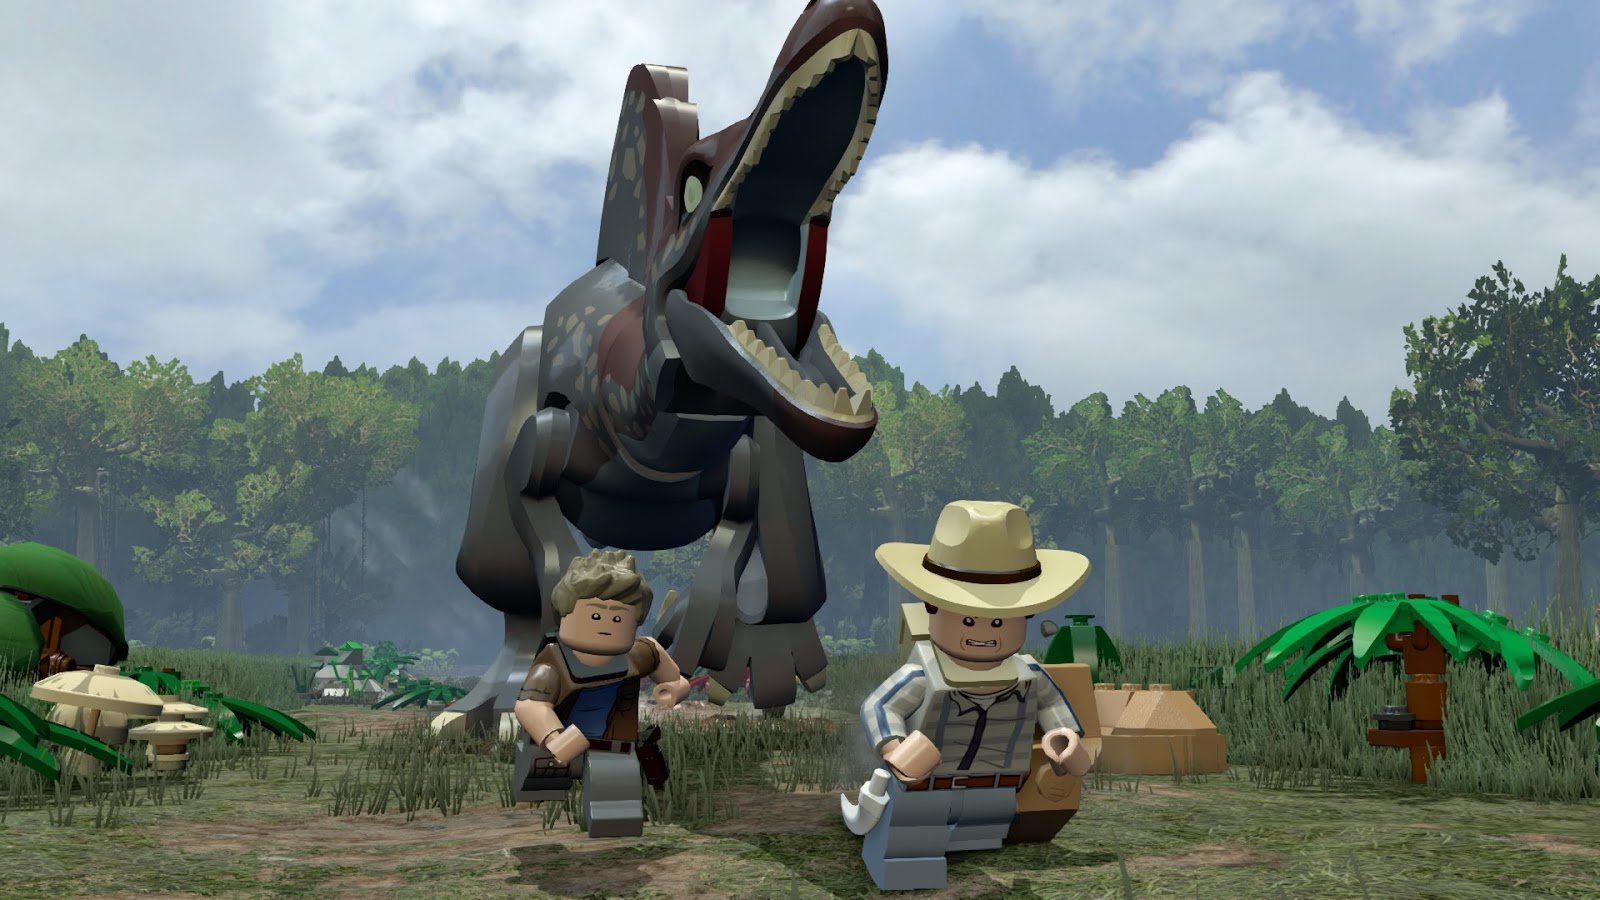 Lego jurassic world mac review chalgyrs game room that the recent jurassic world movie was such a huge success should only reinforce the likelihood that the game is well received the good news is gumiabroncs Image collections